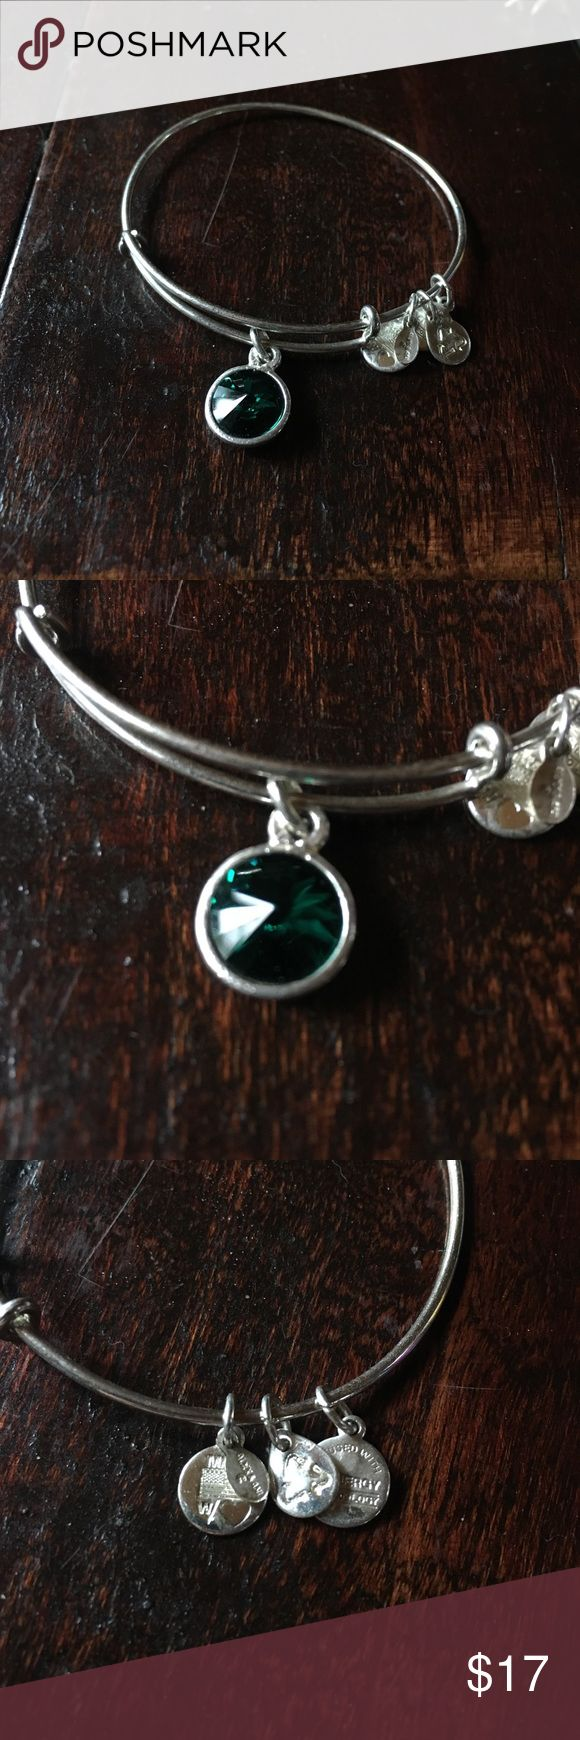 Alex & Ani emerald birthstone bracket! Good condition! Emerald stone. Price flexible just looking to sell! 😊💚💍 Alex & Ani Jewelry Bracelets